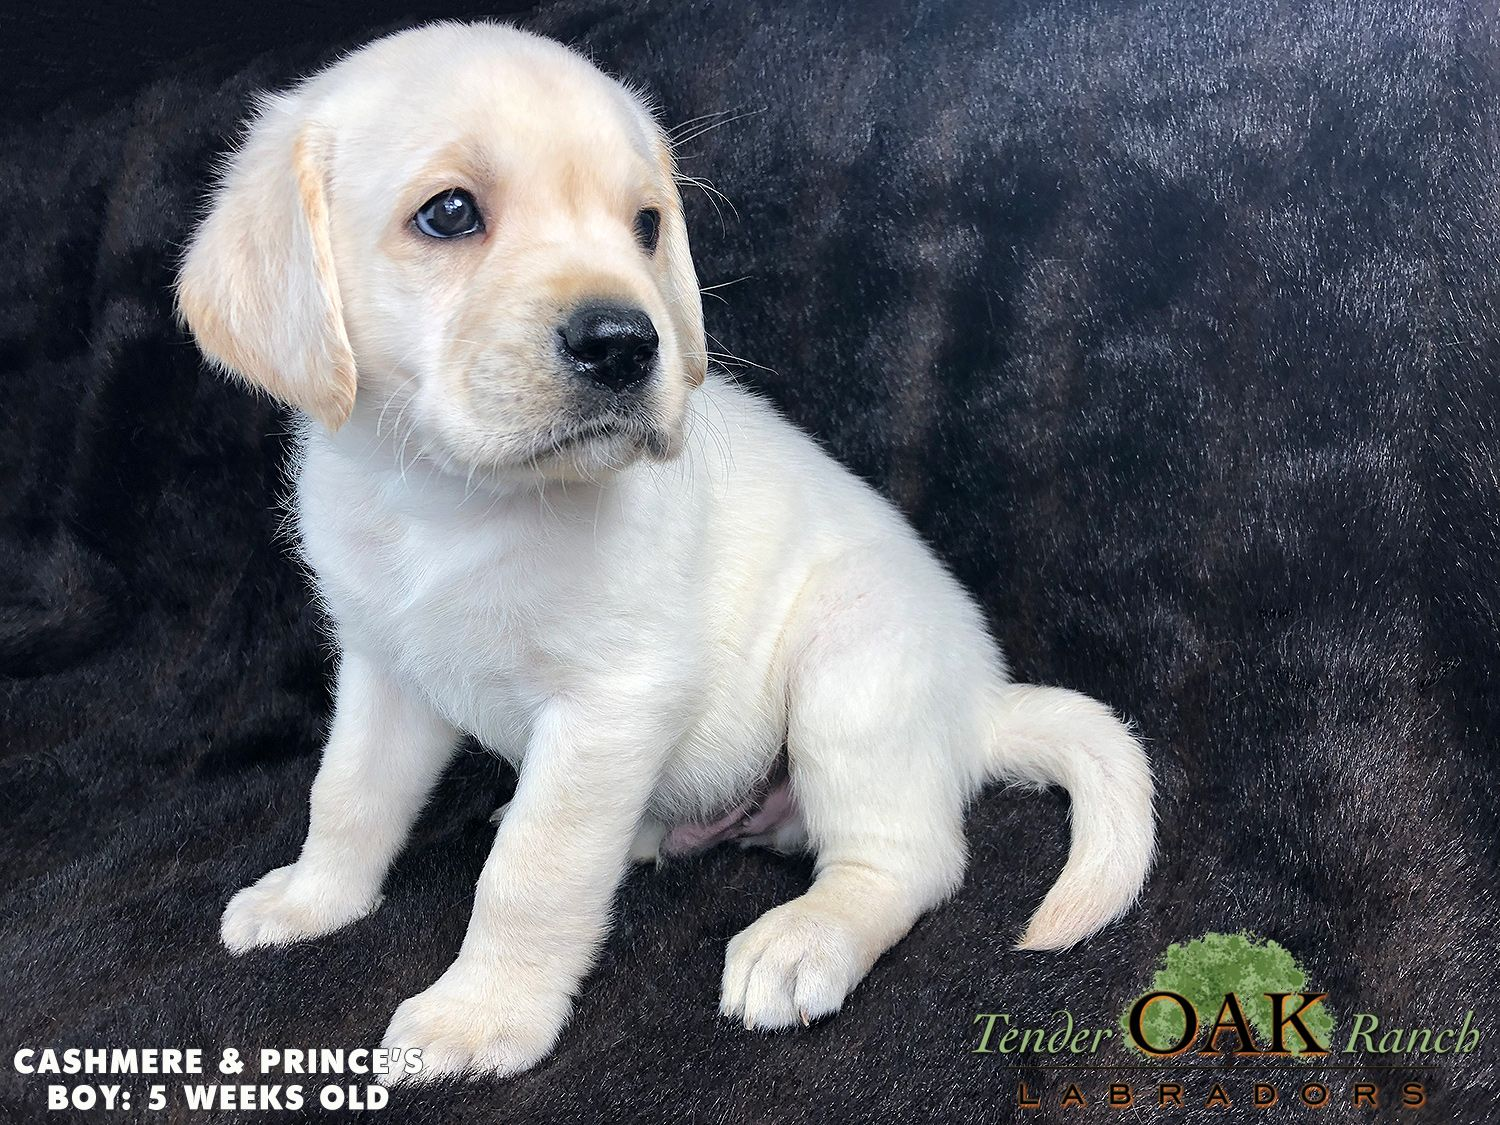 Pin By Tenderoaklabradors On Labrador Puppies For Sale English Lab Puppies Lab Puppies Labrador Puppies For Sale